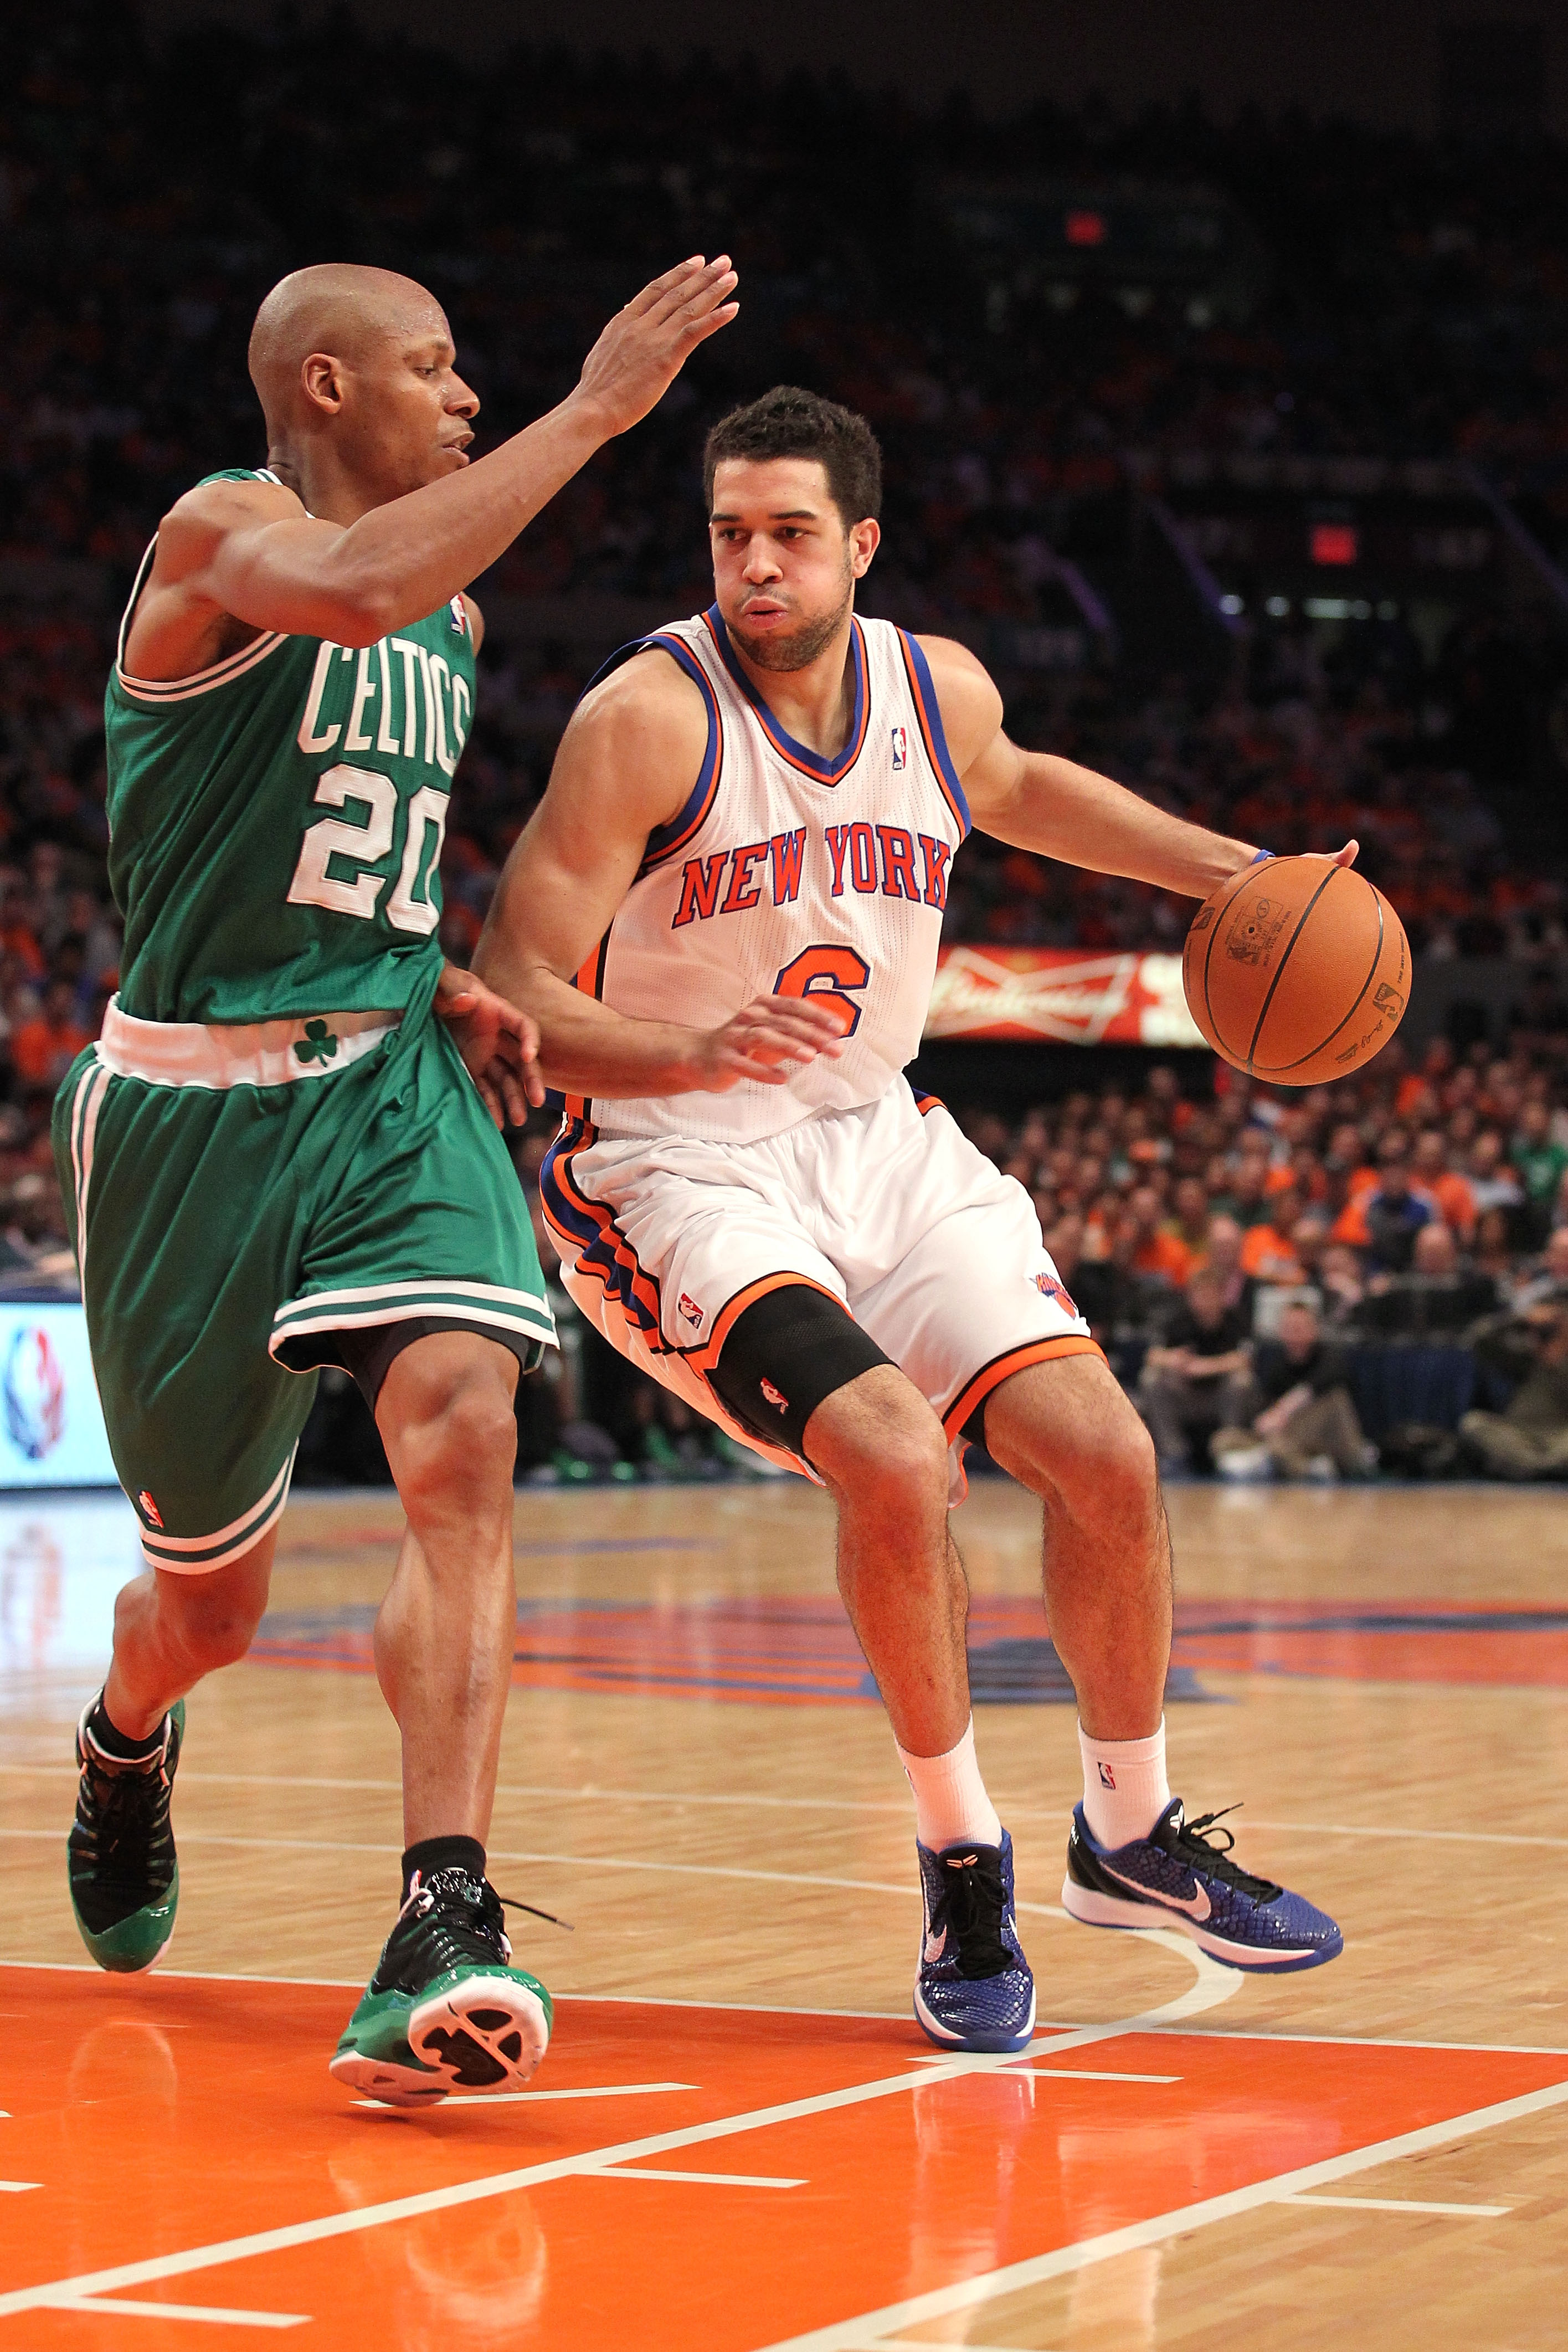 NEW YORK, NY - APRIL 24:  Landry Fields #6 of the New York Knicks drives against Ray Allen #20 of the Boston Celtics in Game Four of the Eastern Conference Quarterfinals during the 2011 NBA Playoffs on April 24, 2011 at Madison Square Garden in New York C